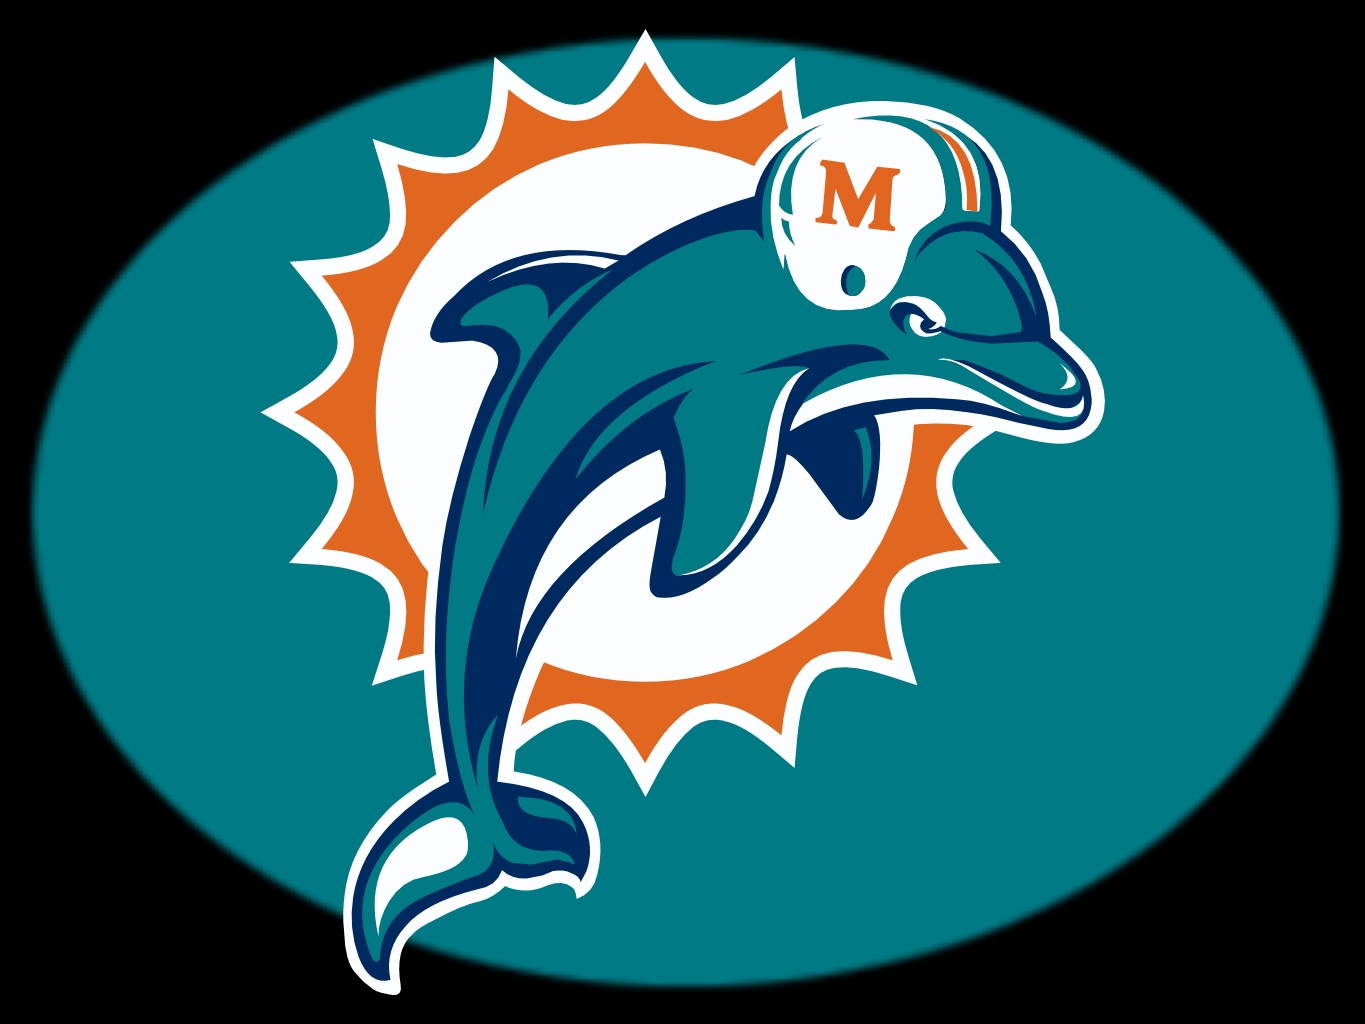 The Miami Dolphins joined the American Football League AFL when an expansion franchise was awarded to lawyer Joseph Robbie and actor Danny Thomas in 1965 for 75